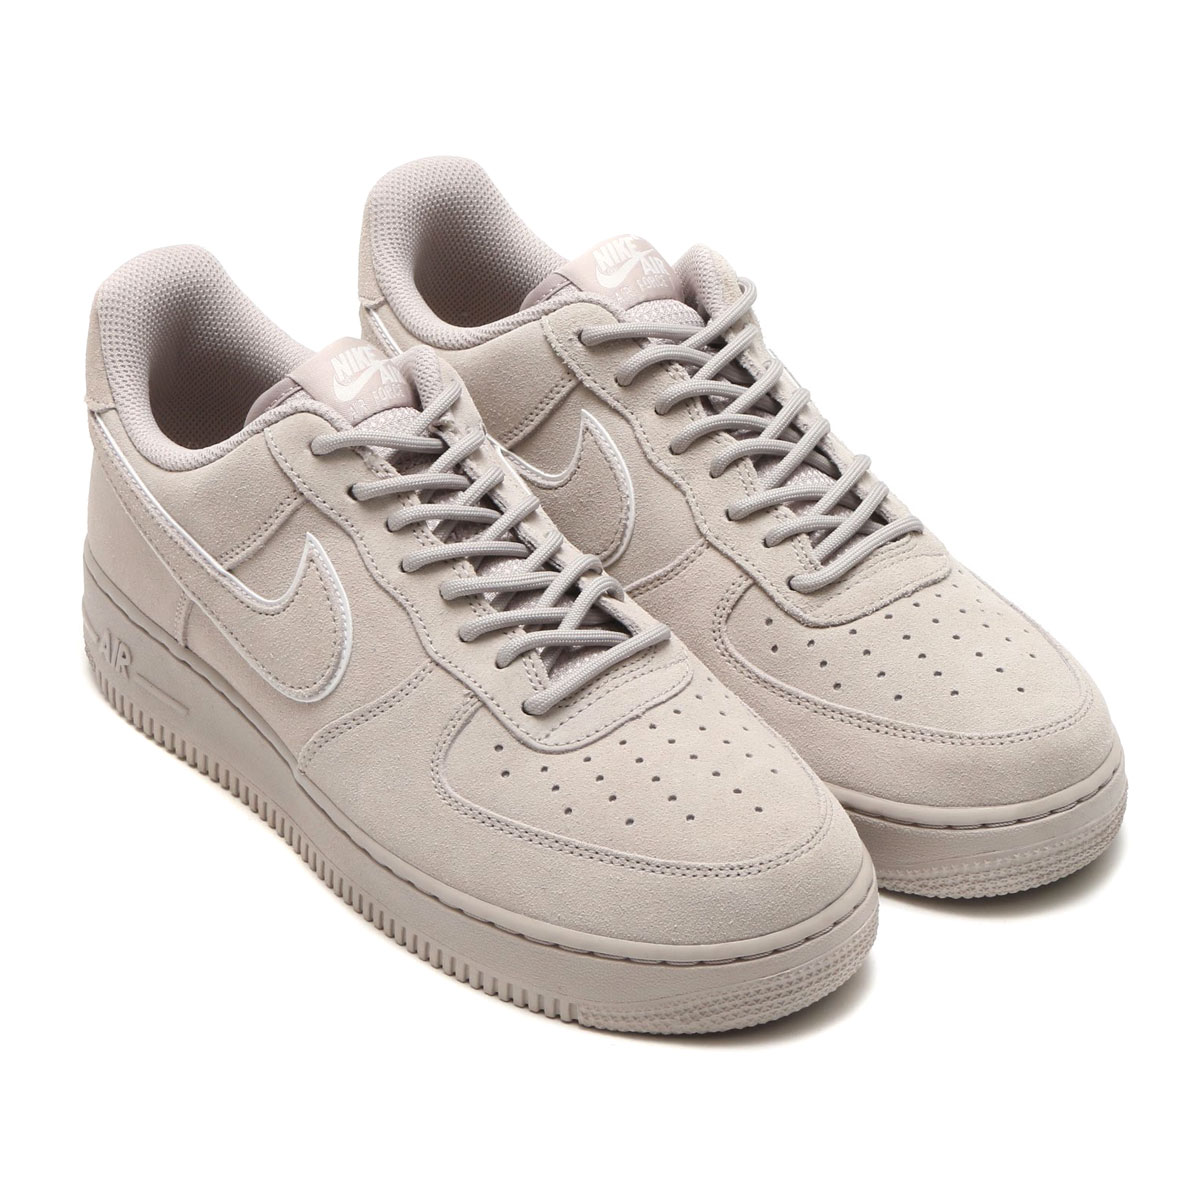 bbecf5d51a8 NIKE AIR FORCE 1  07 LV8 SUEDE (Nike air force 1 07 LV8 suede) (MOON  PARTICLE MOON PARTICLE-SEPIA STONE) 18SU-I